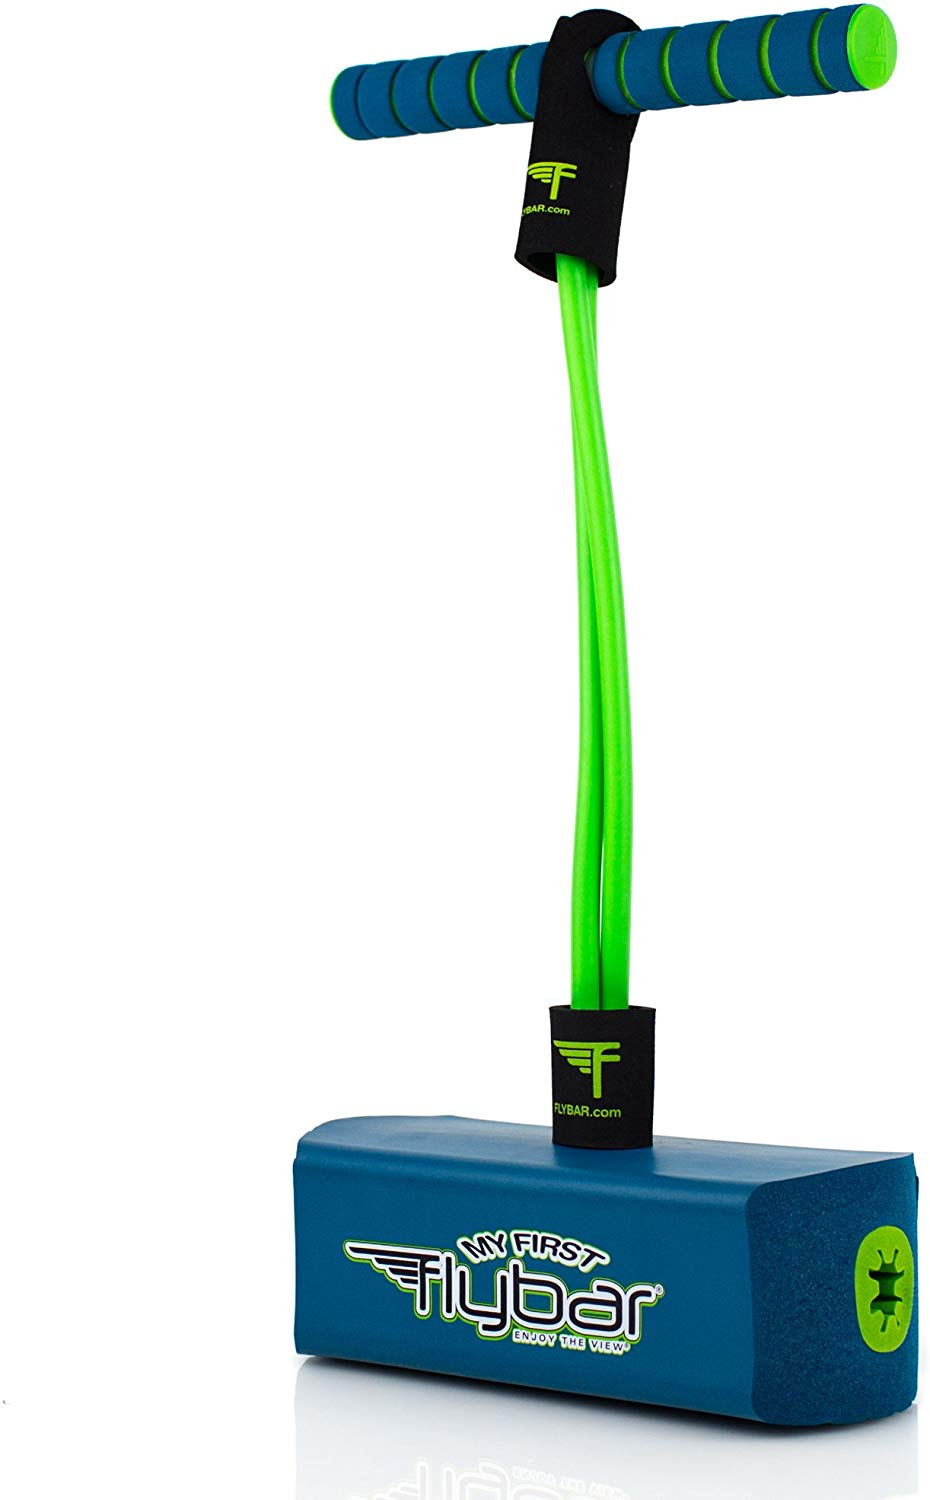 Flybar My First Foam Pogo Jumper for Kids Fun and Safe Pogo Stick